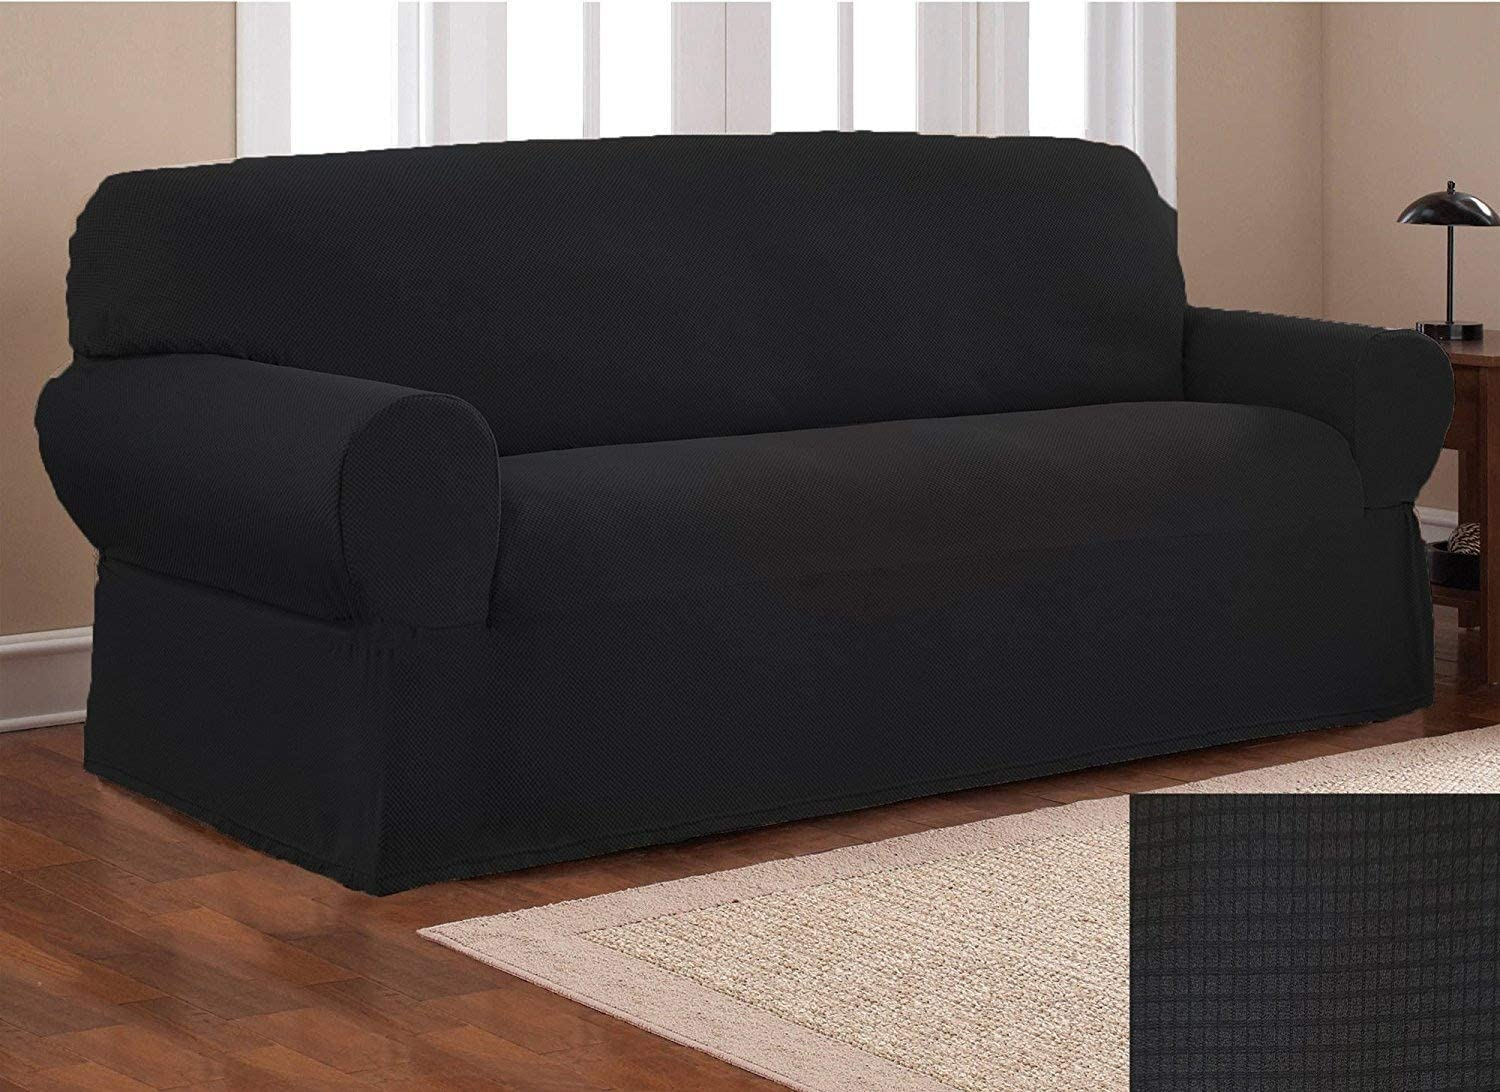 Fancy Linen 1pc Sure Fit Stretch Fabric Sofa Slipcover Sofa Cover Solid New # Stella (Black): Home & Kitchen